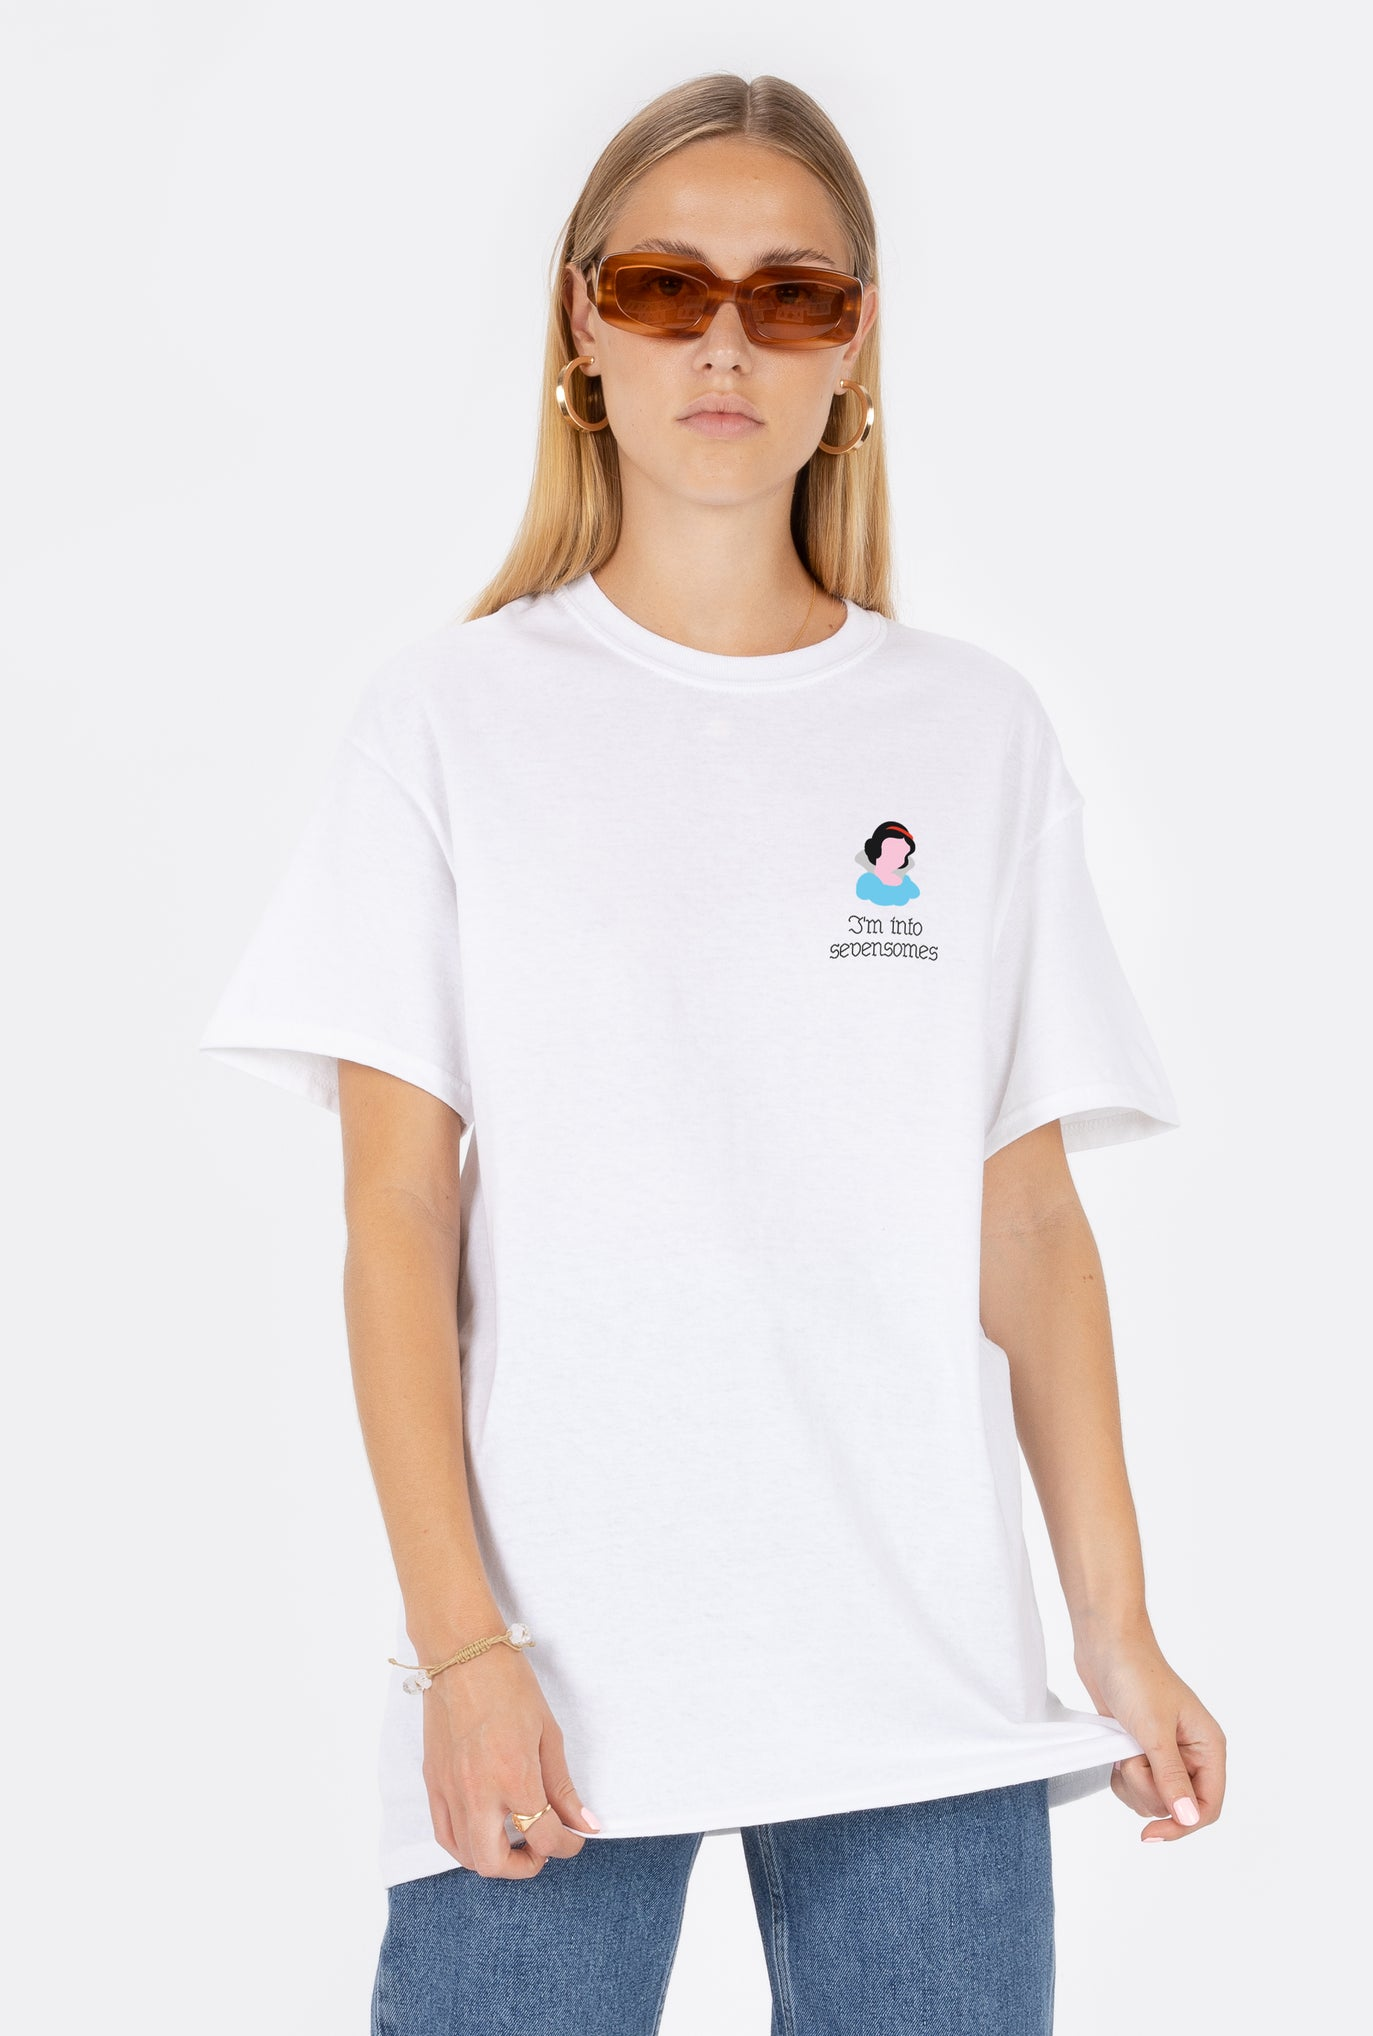 T-Shirt S/S Snow White